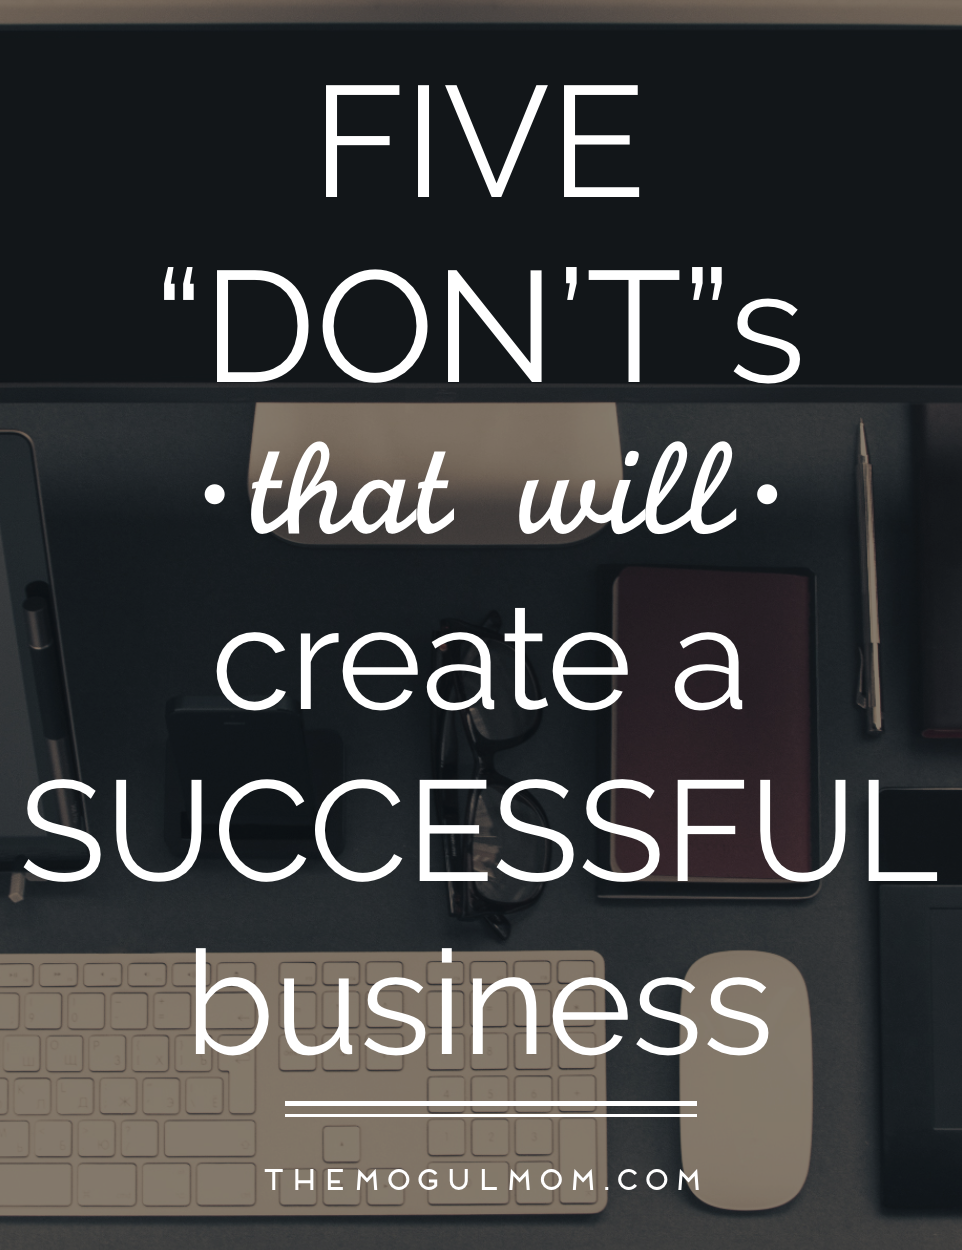 5 Don'ts That Will Create a Successful Business